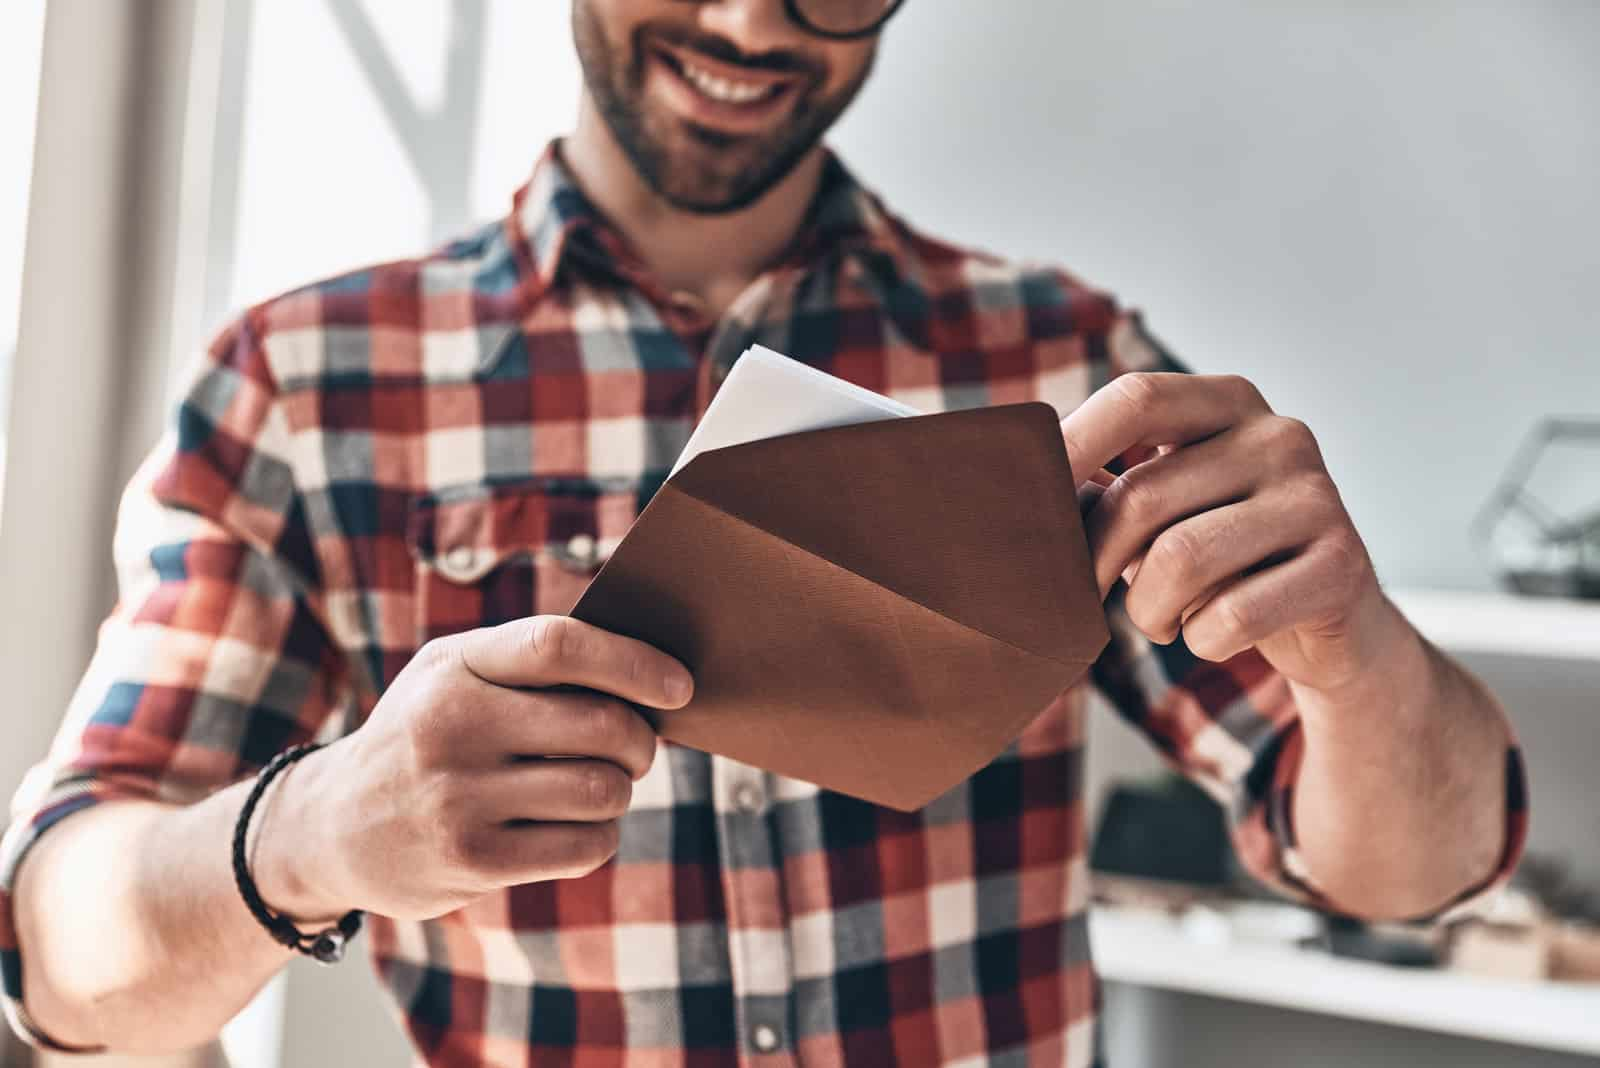 a smiling man opens an envelope with a letter